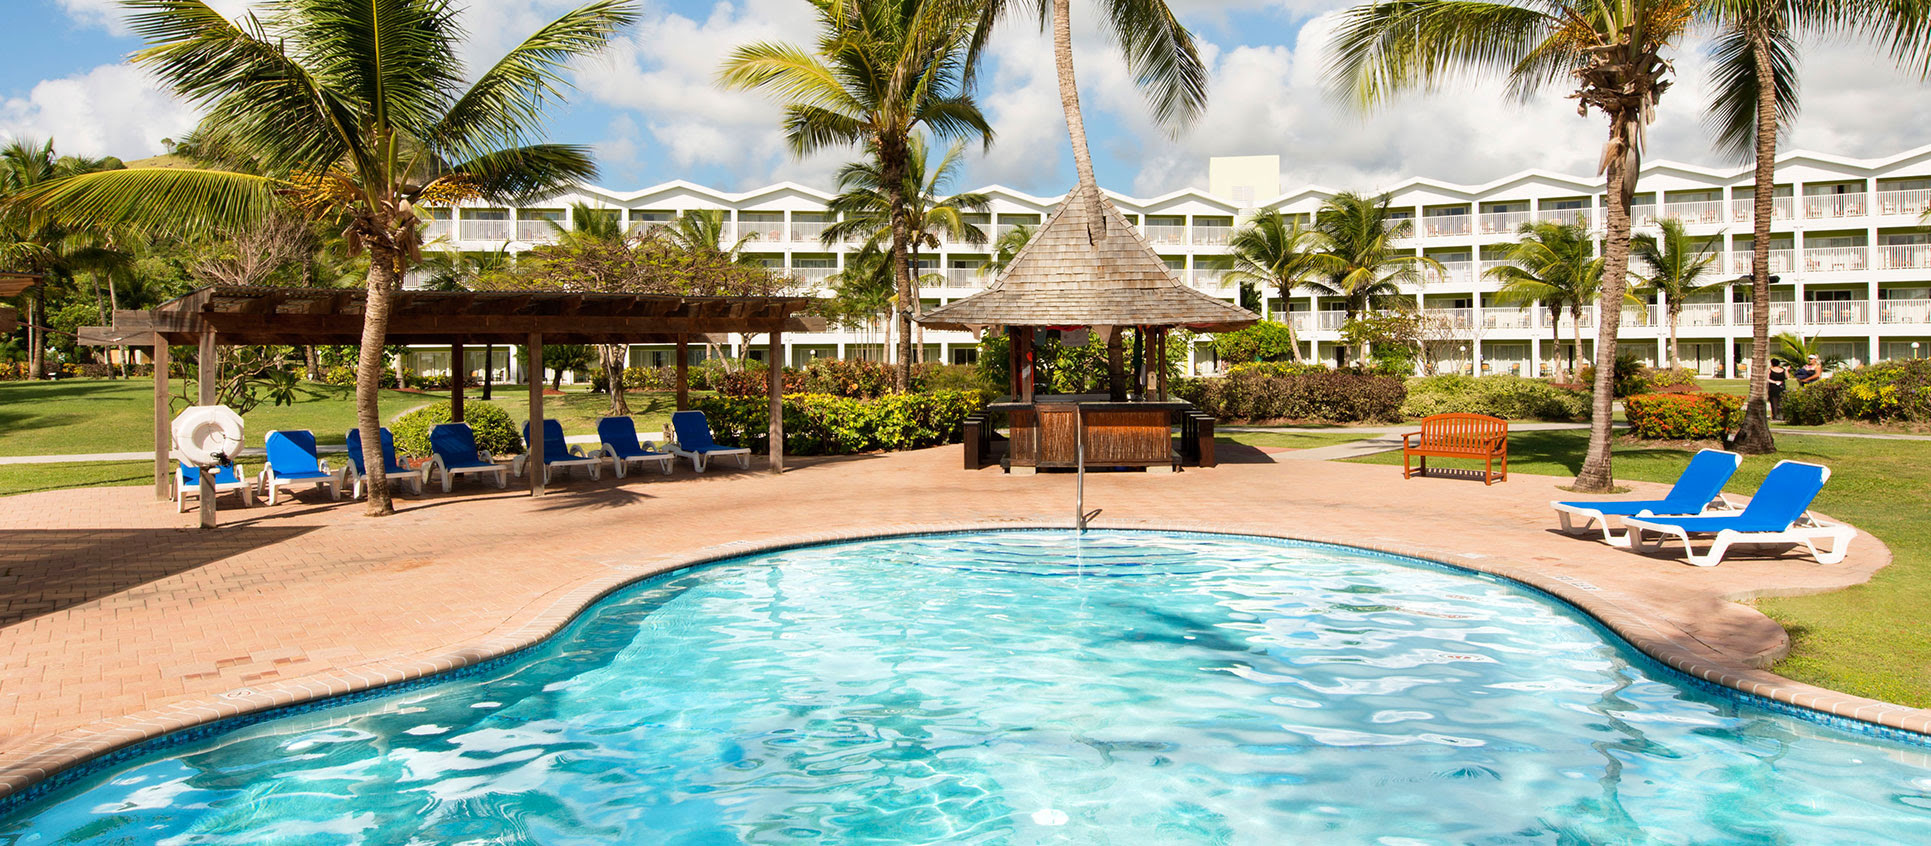 Beach Holidays at Coconut Bay All Inclusive St Lucia